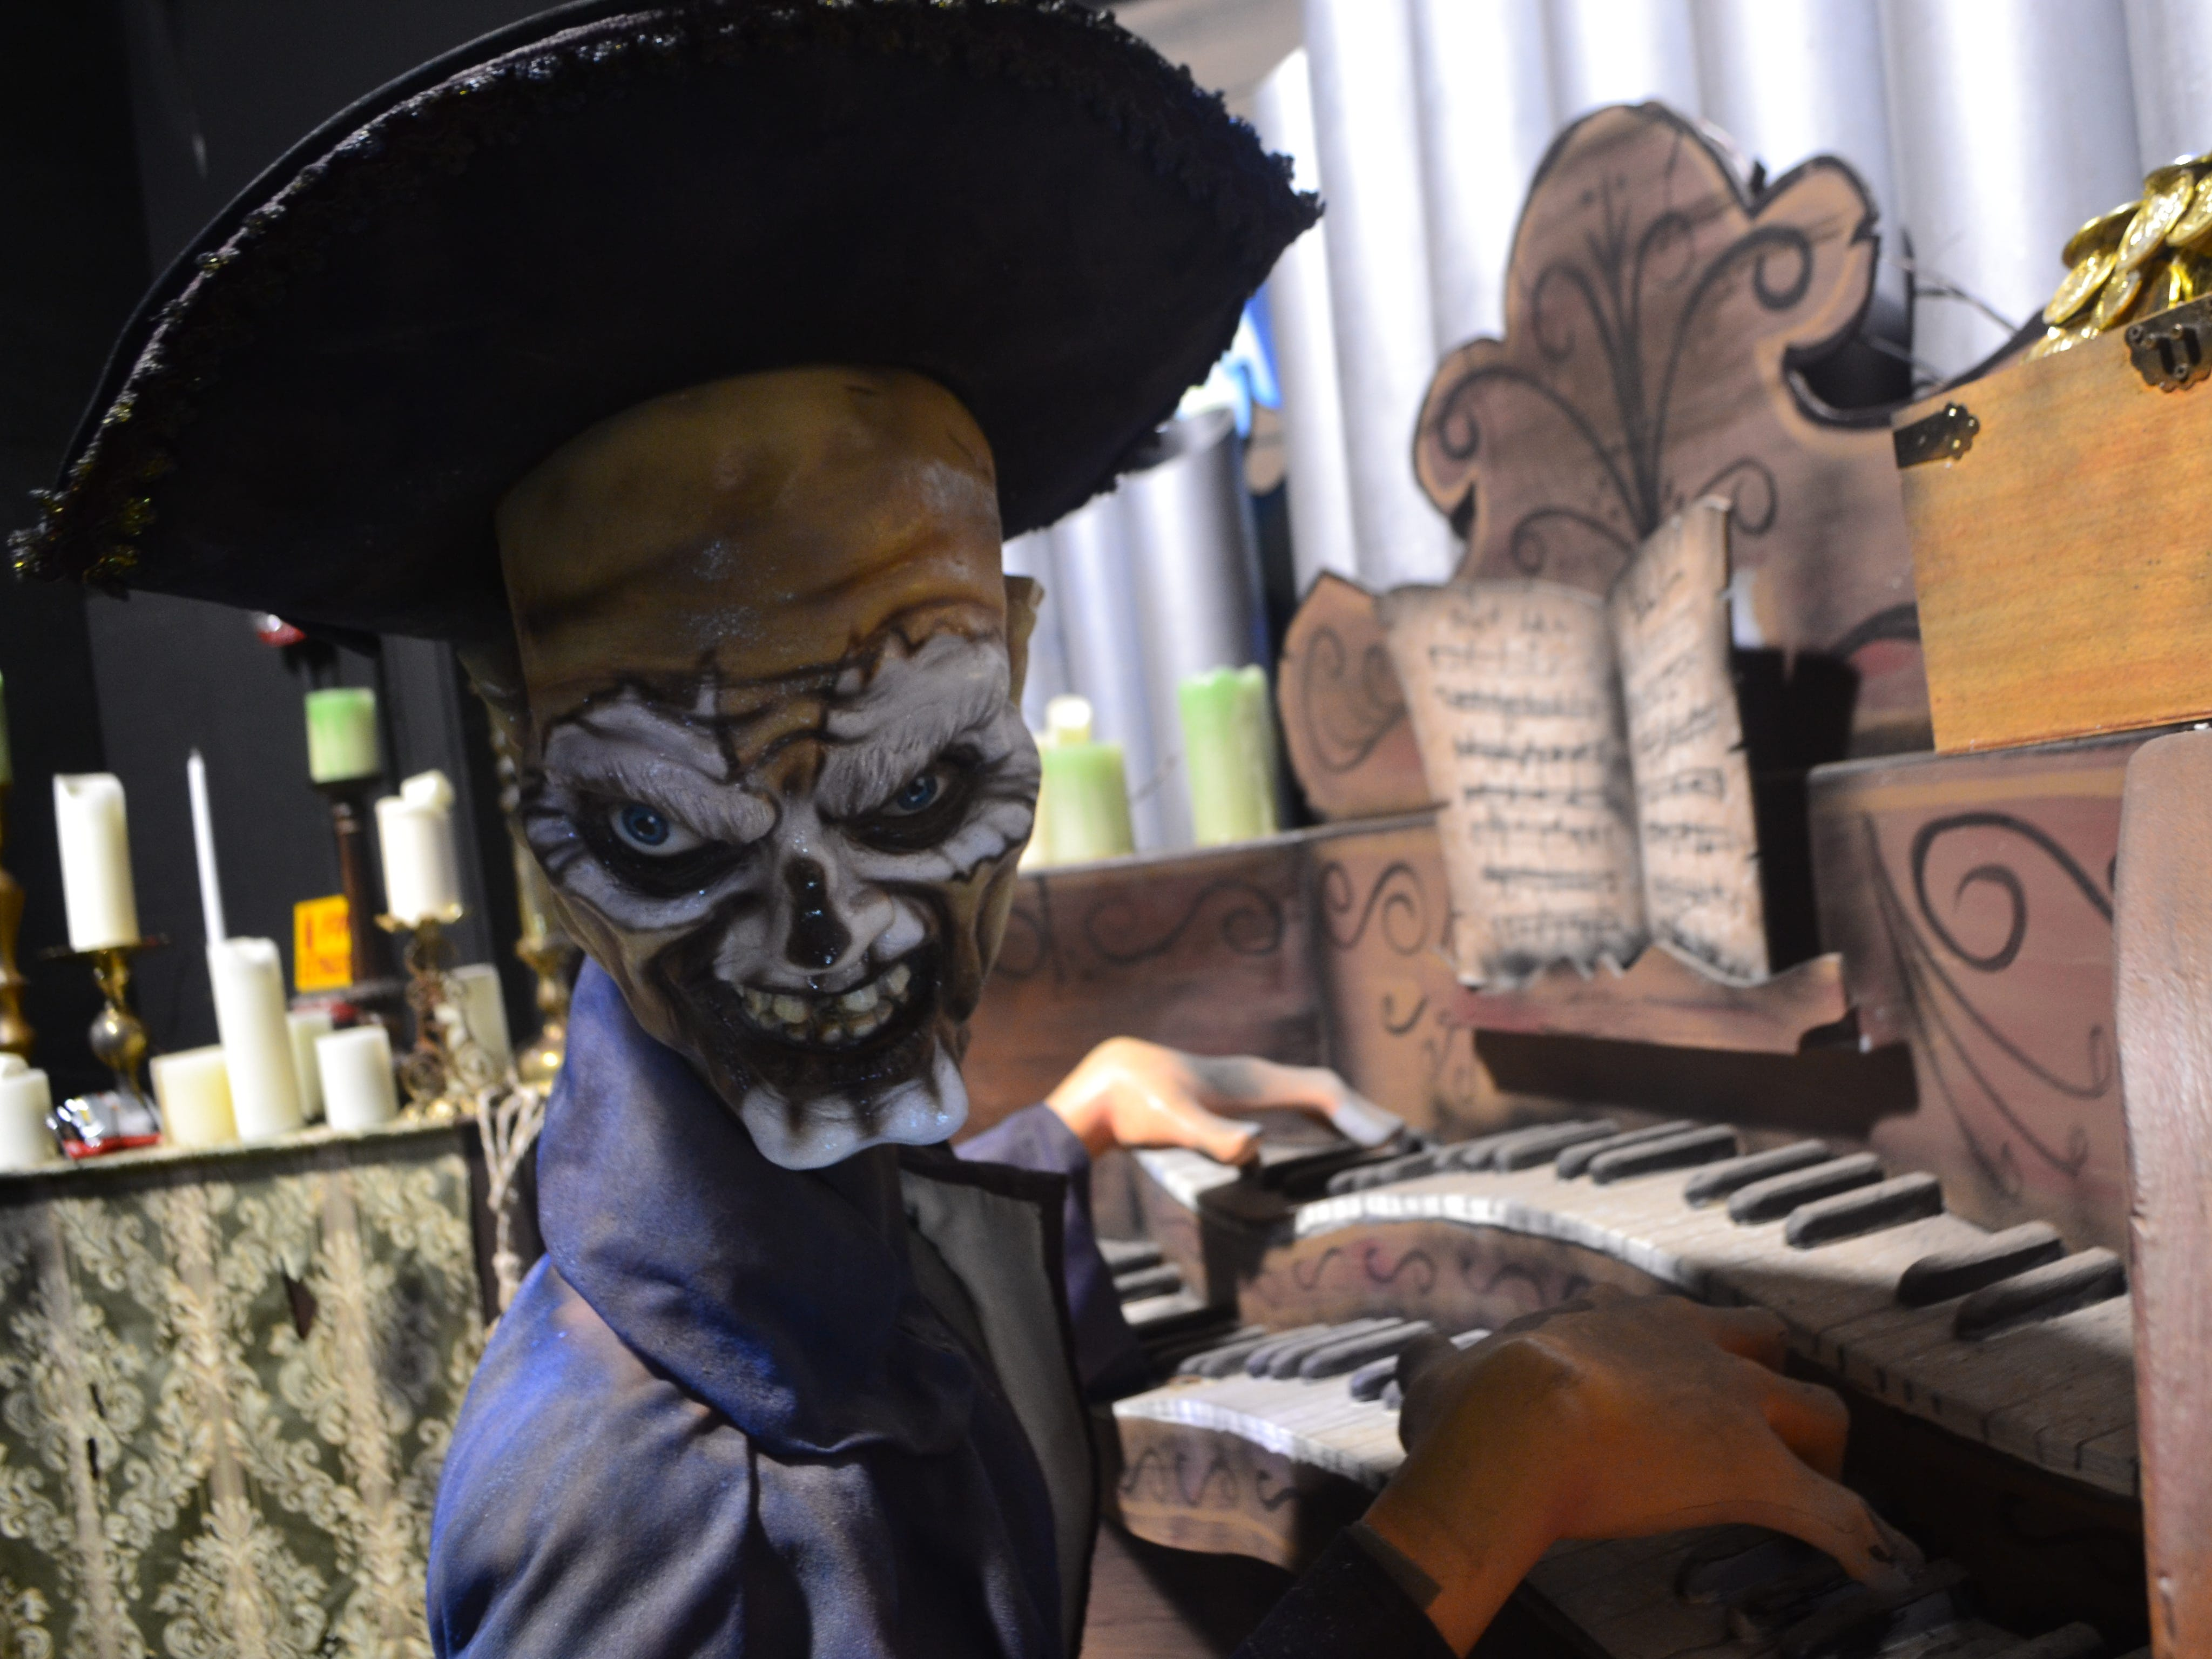 Six Flags Fiesta Texas has re-imagined its interactive dark ride with new, original, seafaring characters. Riders will wage battle against nefarious mermaids and pirates, including the dastardly Captain Morgold, while trying to capture hidden treasures.